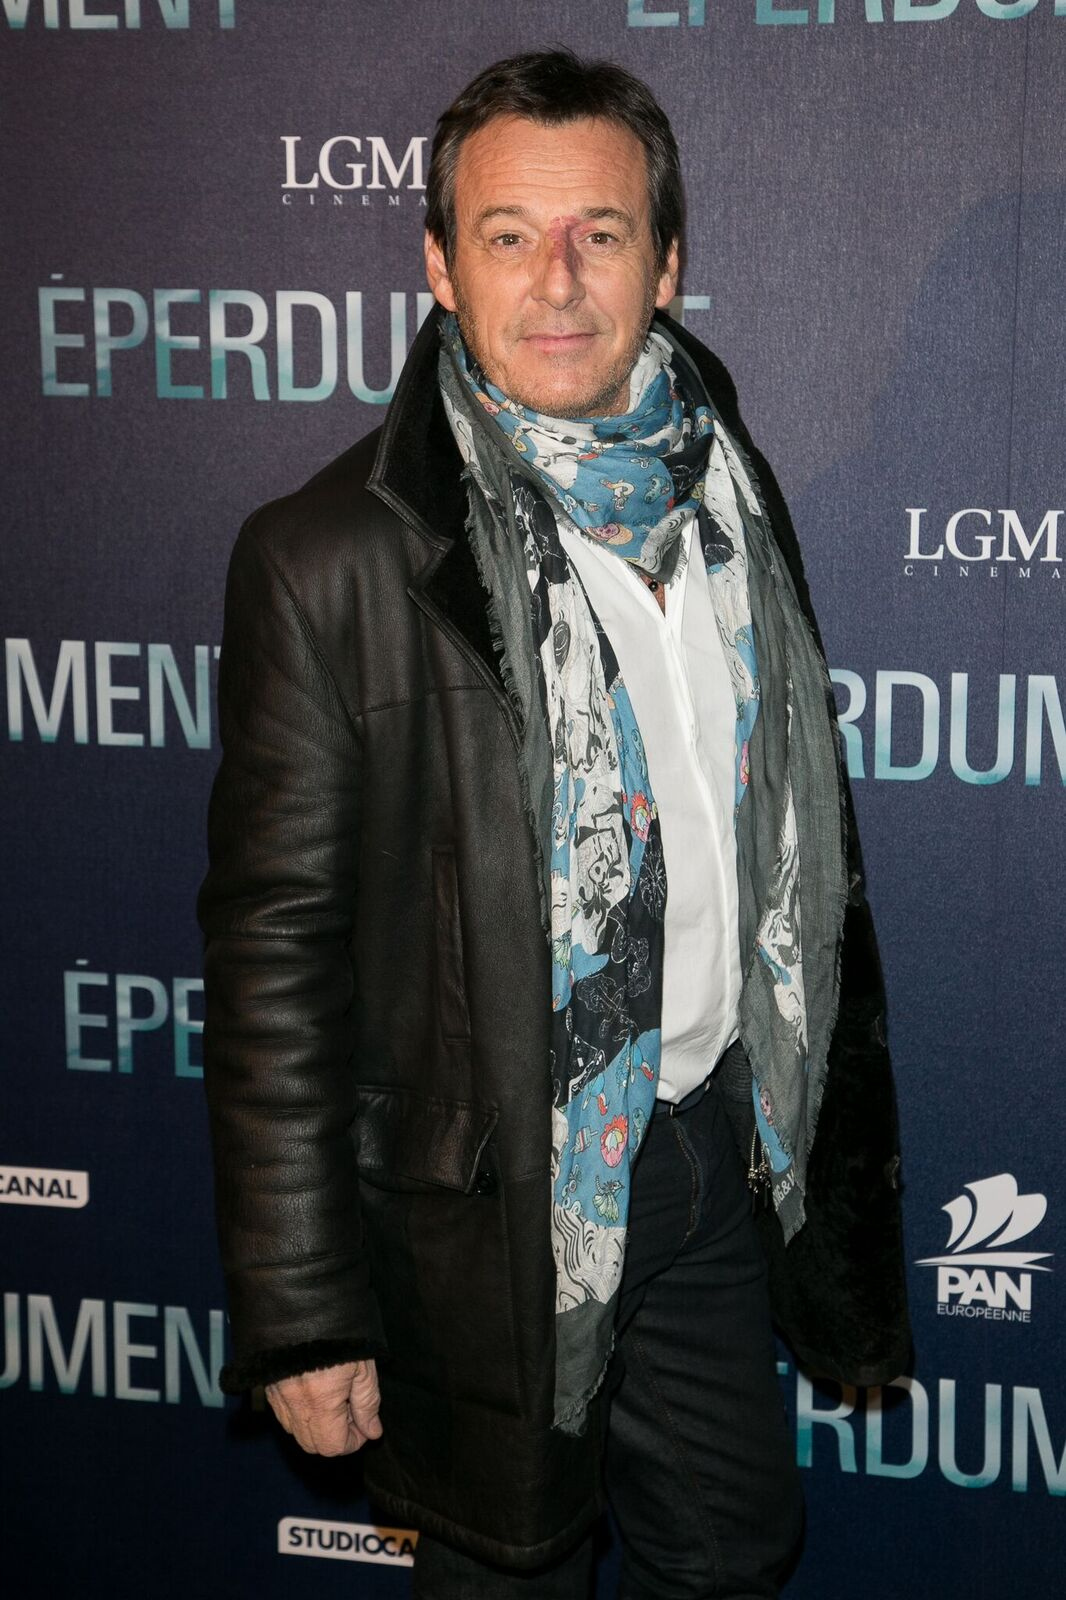 Jean-Luc Reichmann au Cinéma UGC Normandie le 29 février 2016 à Paris, France. | Photo : Getty Images